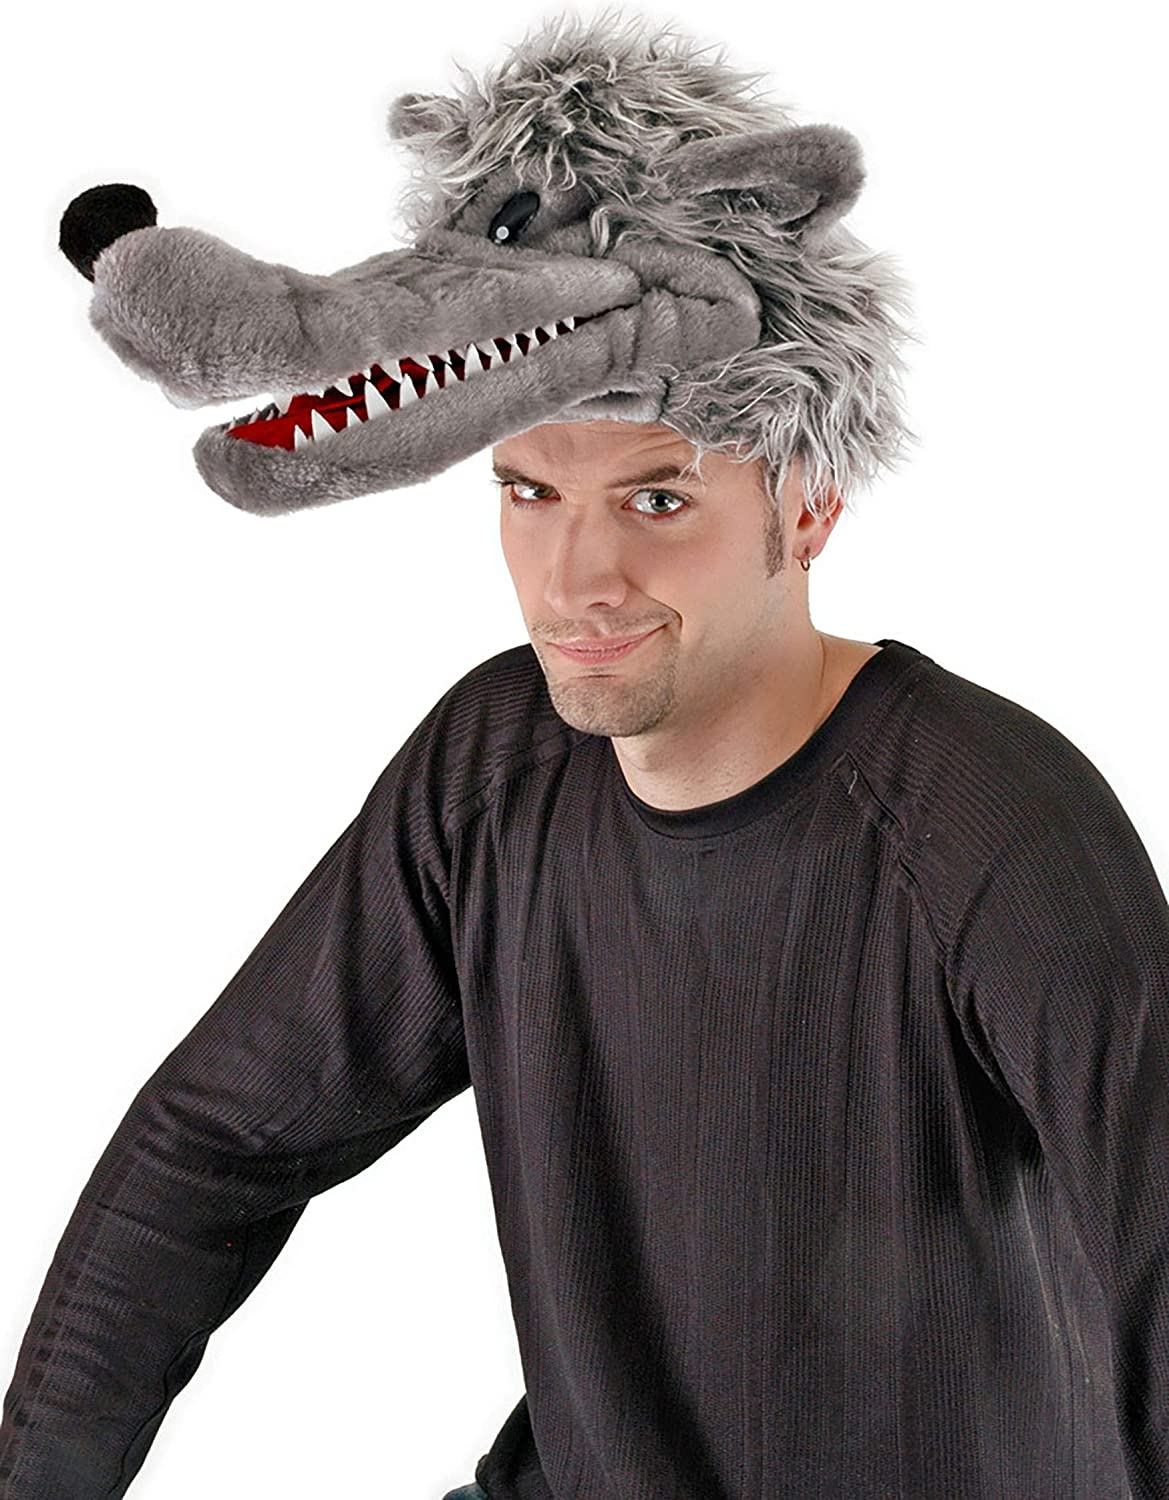 Max 54% OFF Big Bad Wolf Plush Costume Puppet and Adults Luxury goods Kids for Hat